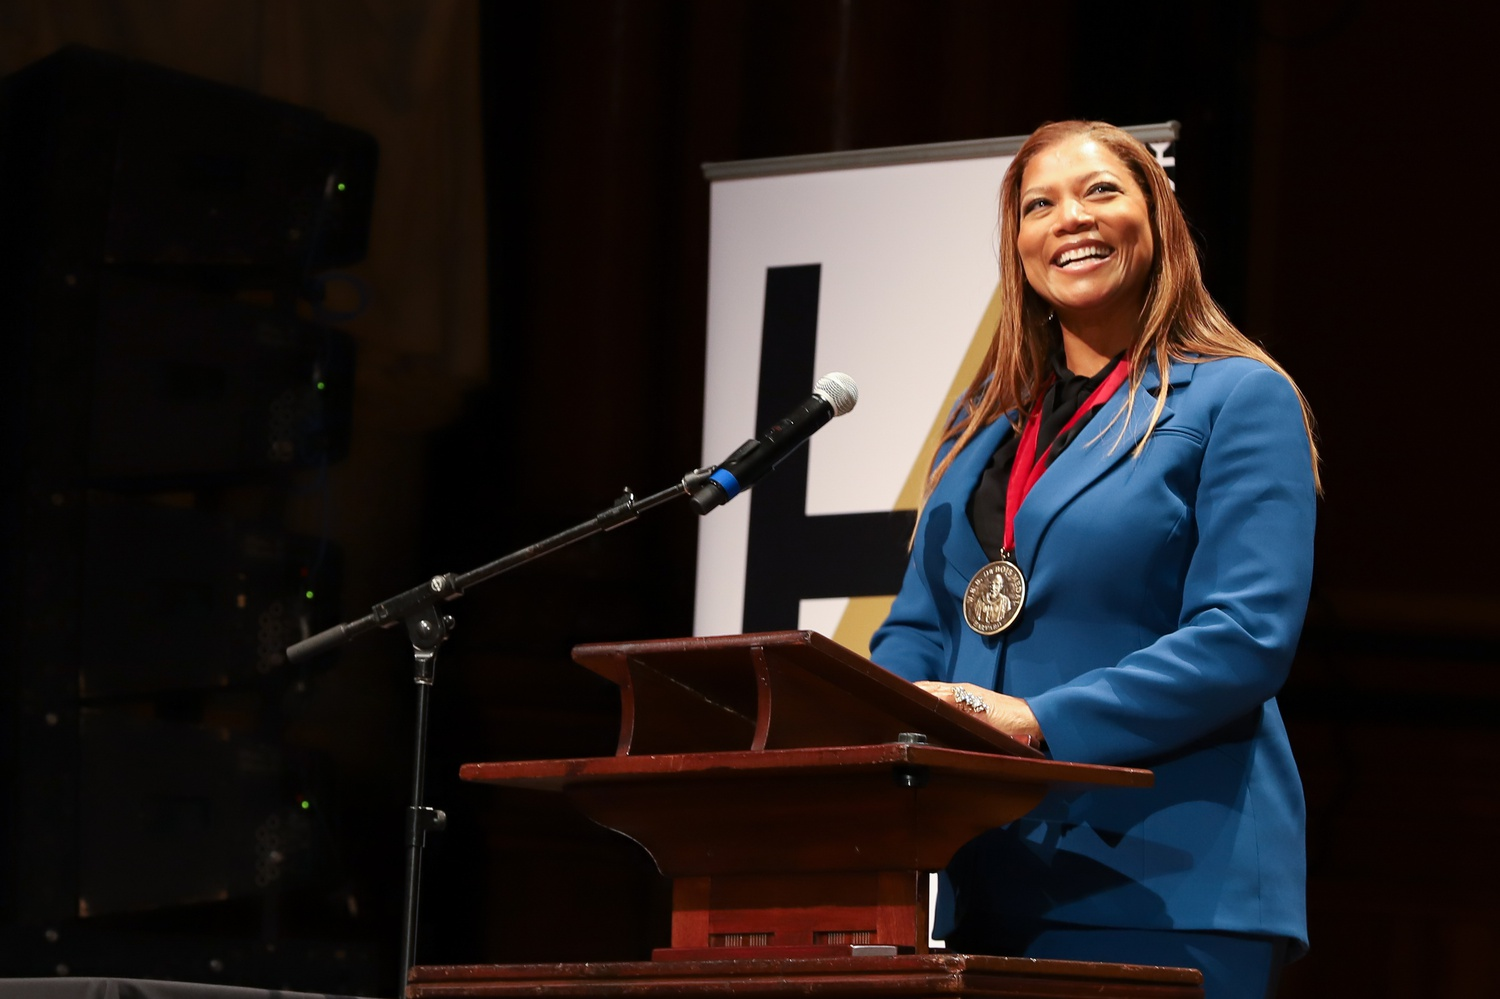 Dana Elaine Owens, better known by her stage name Queen Latifah, was awarded the W.E.B. Du Bois Medal Tuesday. The award recognizes individuals for their contributions to African and African American culture.